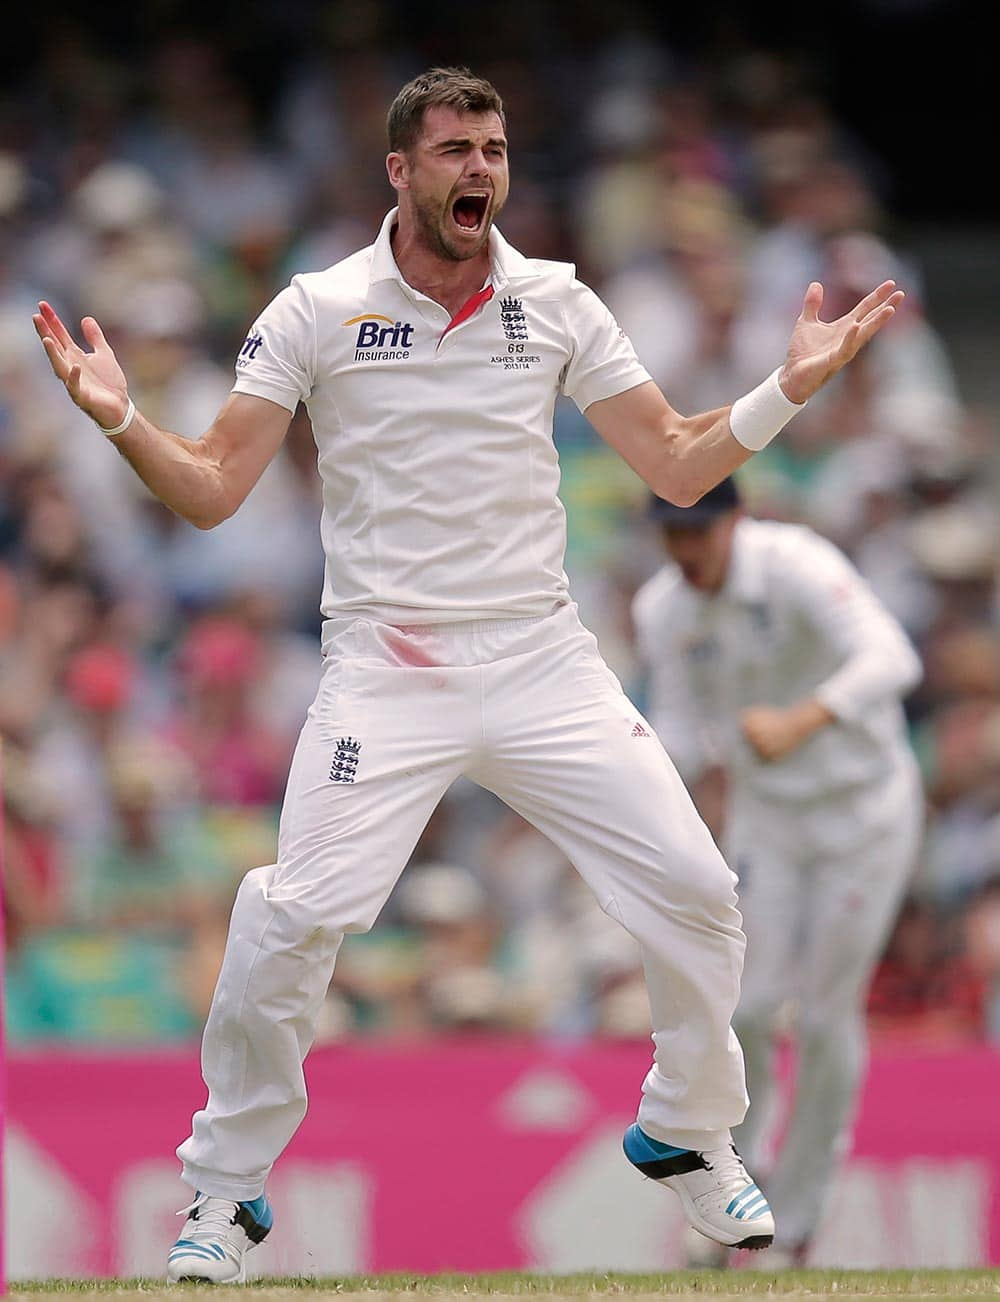 England's James Anderson celebrates being given a LBW decision on Australia's Shane Watson for 43 runs in their Ashes cricket test match at the Sydney Cricket Ground in Sydney.